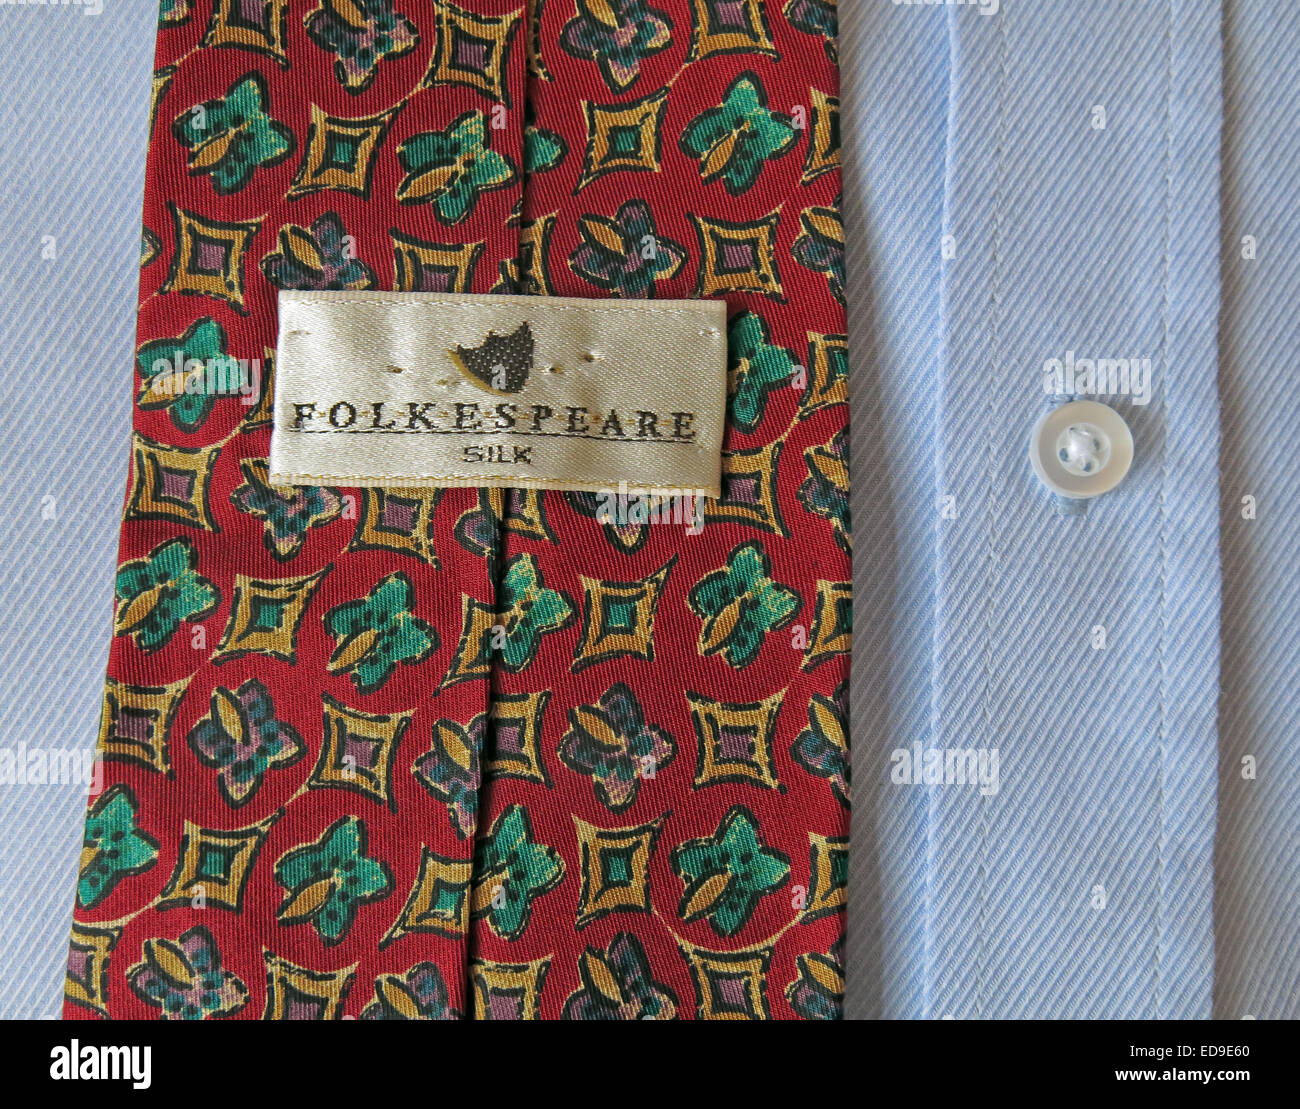 Interesting vintage Folkspeare tie, male neckware in silk - Stock Image